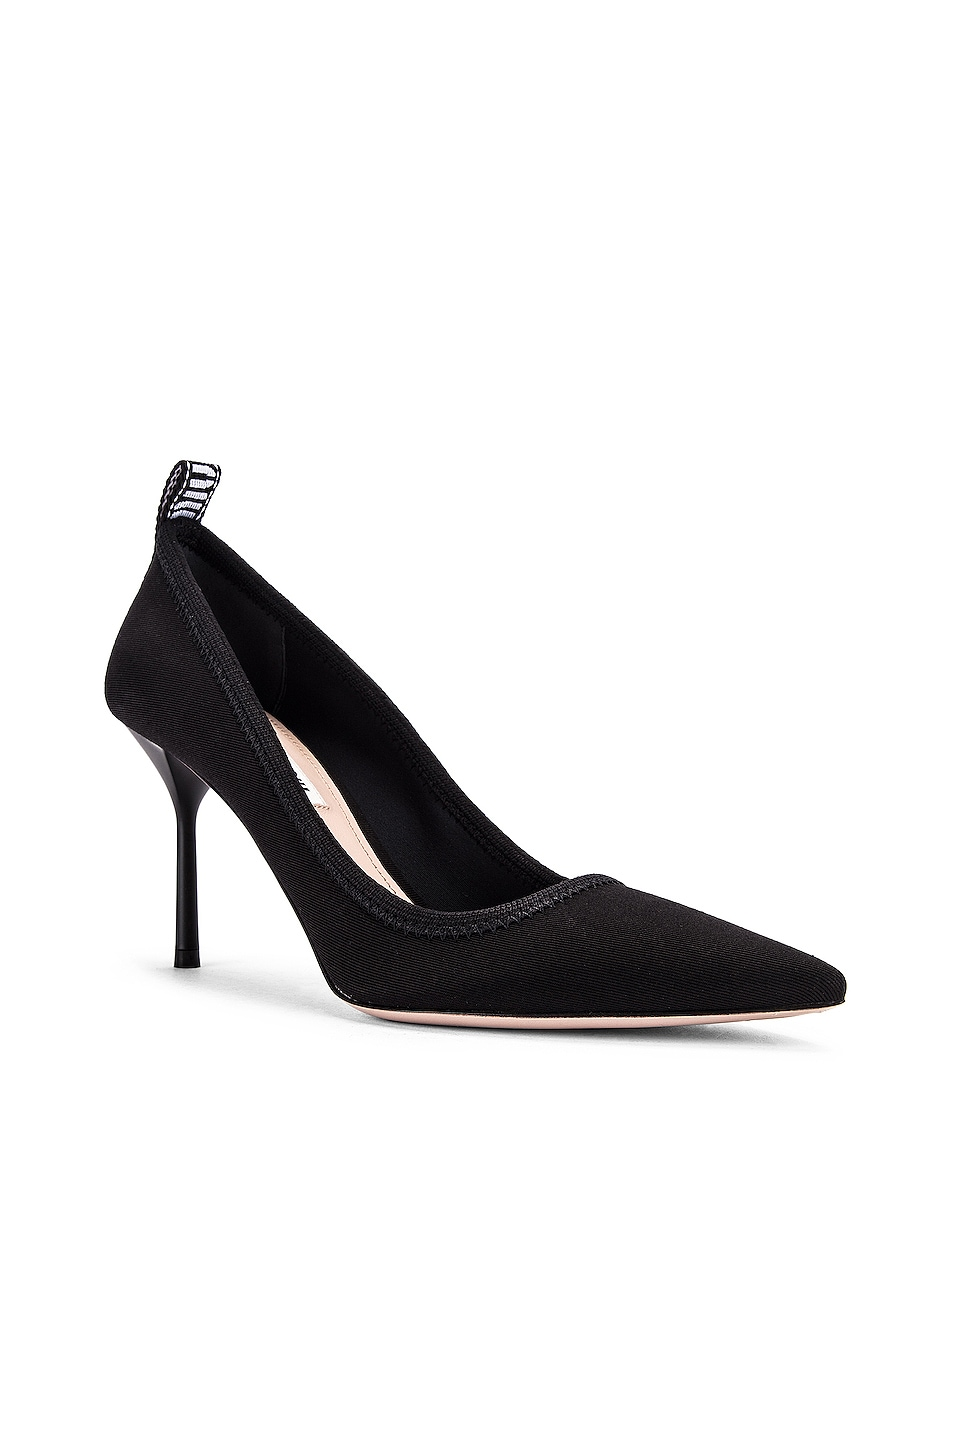 Image 2 of Miu Miu Pointed Toe Heels in Black